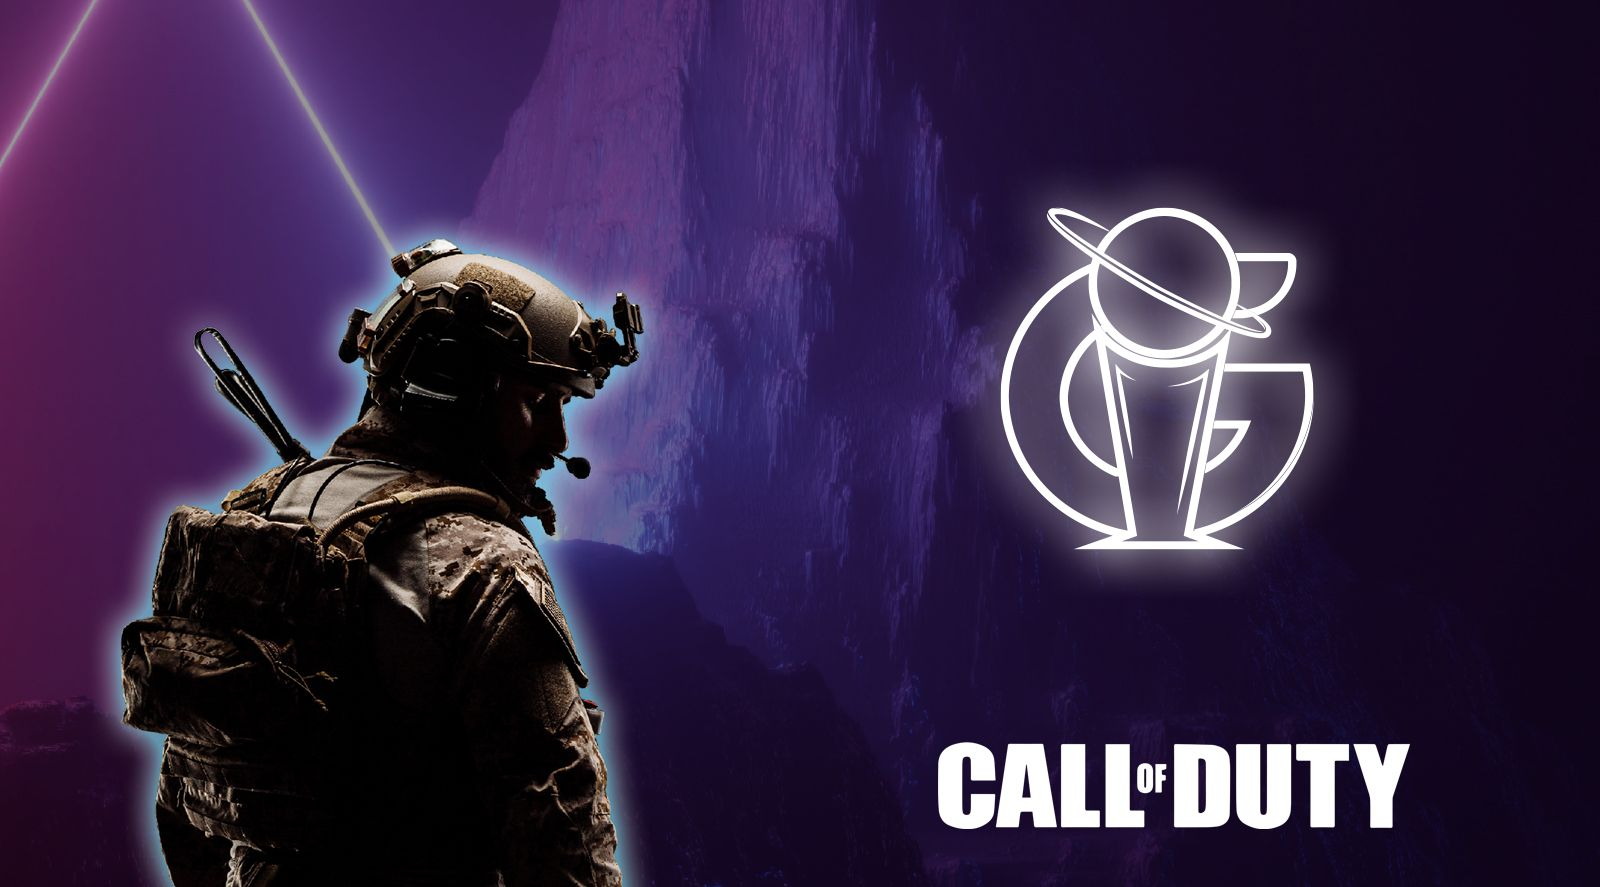 Call of Duty esports tournaments available in the IGGalaxy!